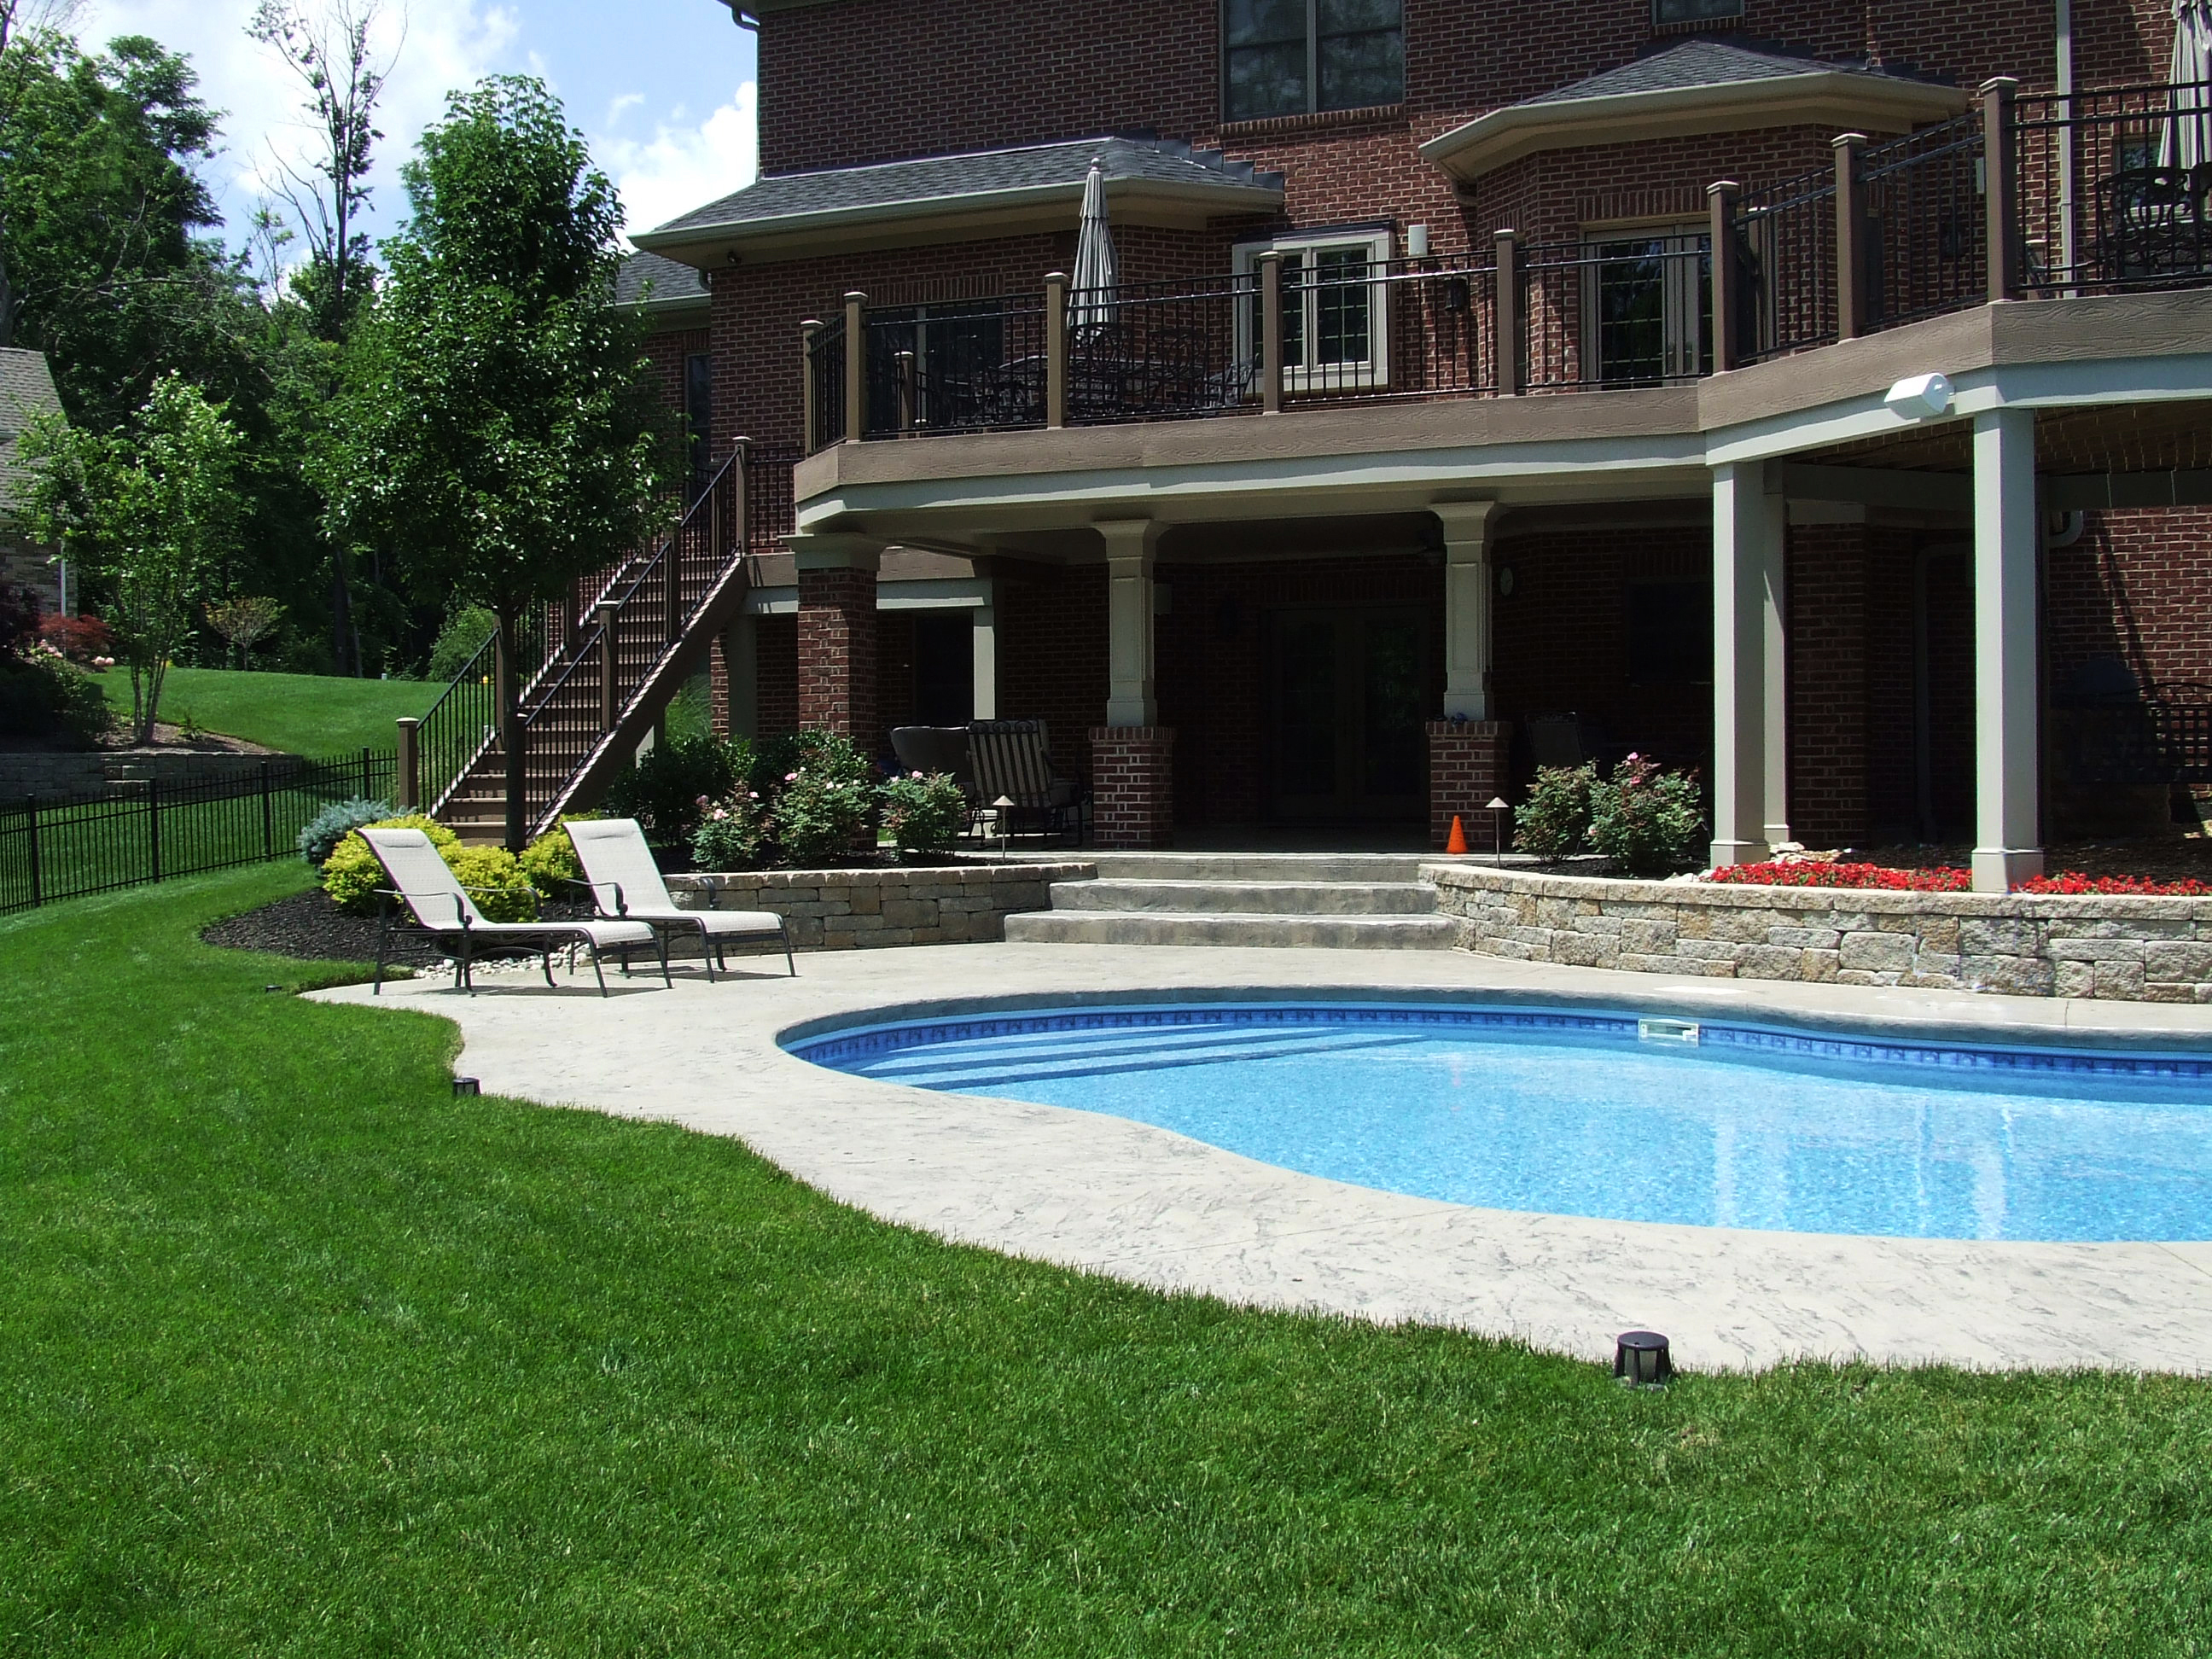 SunSpot Inground Pool Design - 115